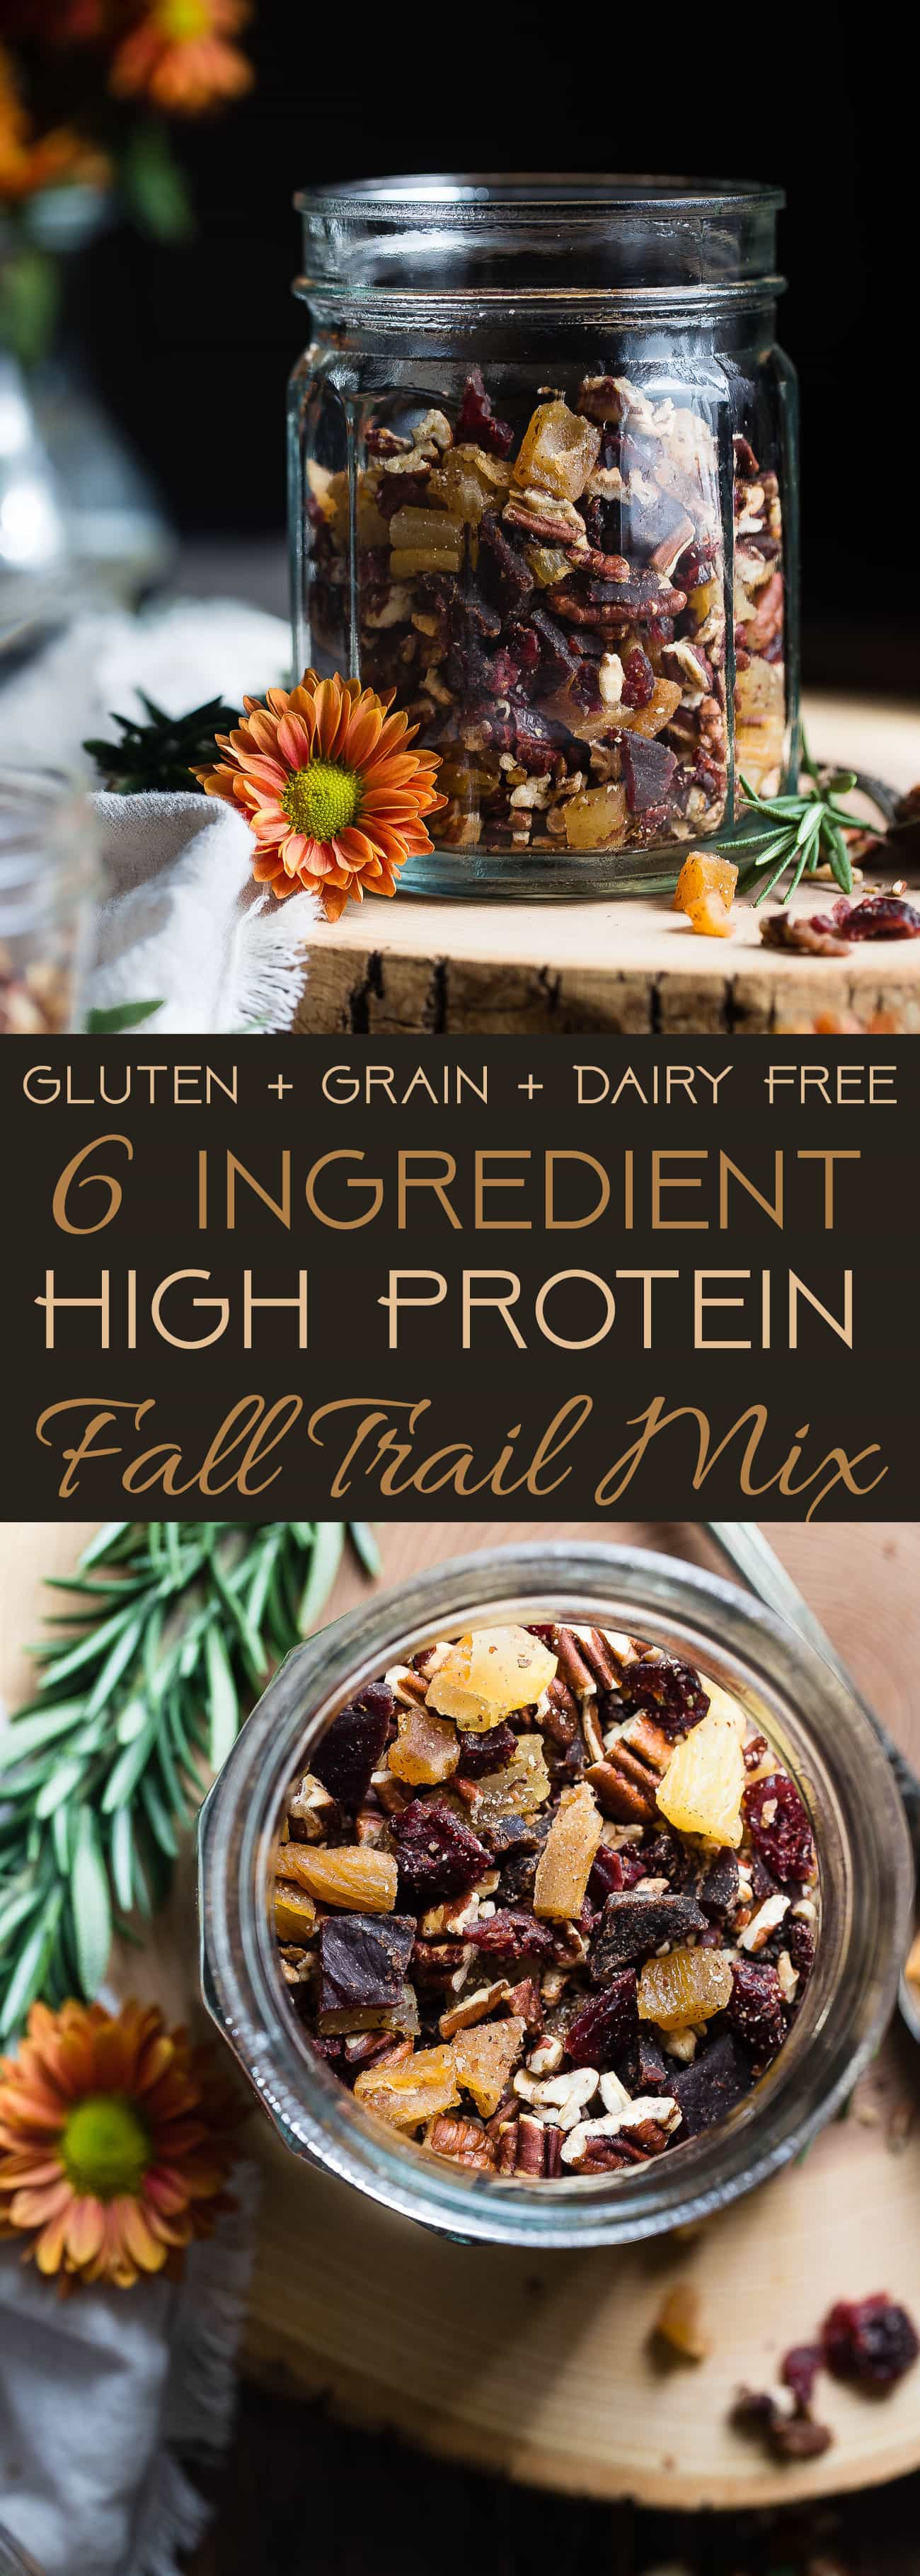 Protein Packed Fall Trail Mix -This quick and easy fall trail mix recipe only uses 6 ingredients and is secretly high in protein! It's a healthy gluten, grain and dairy free portable snack for busy days that is adult and kid friendly! | Foodfaithfitness.com | @FoodFaithFit | Homemade trail mix recipe. sweet trail mix recipe. easy trail mix recipe. trail mix recipe for kids. healthy trail mix recipe. protein trail mix recipe. trail mix for kids. savory trail mix recipe.